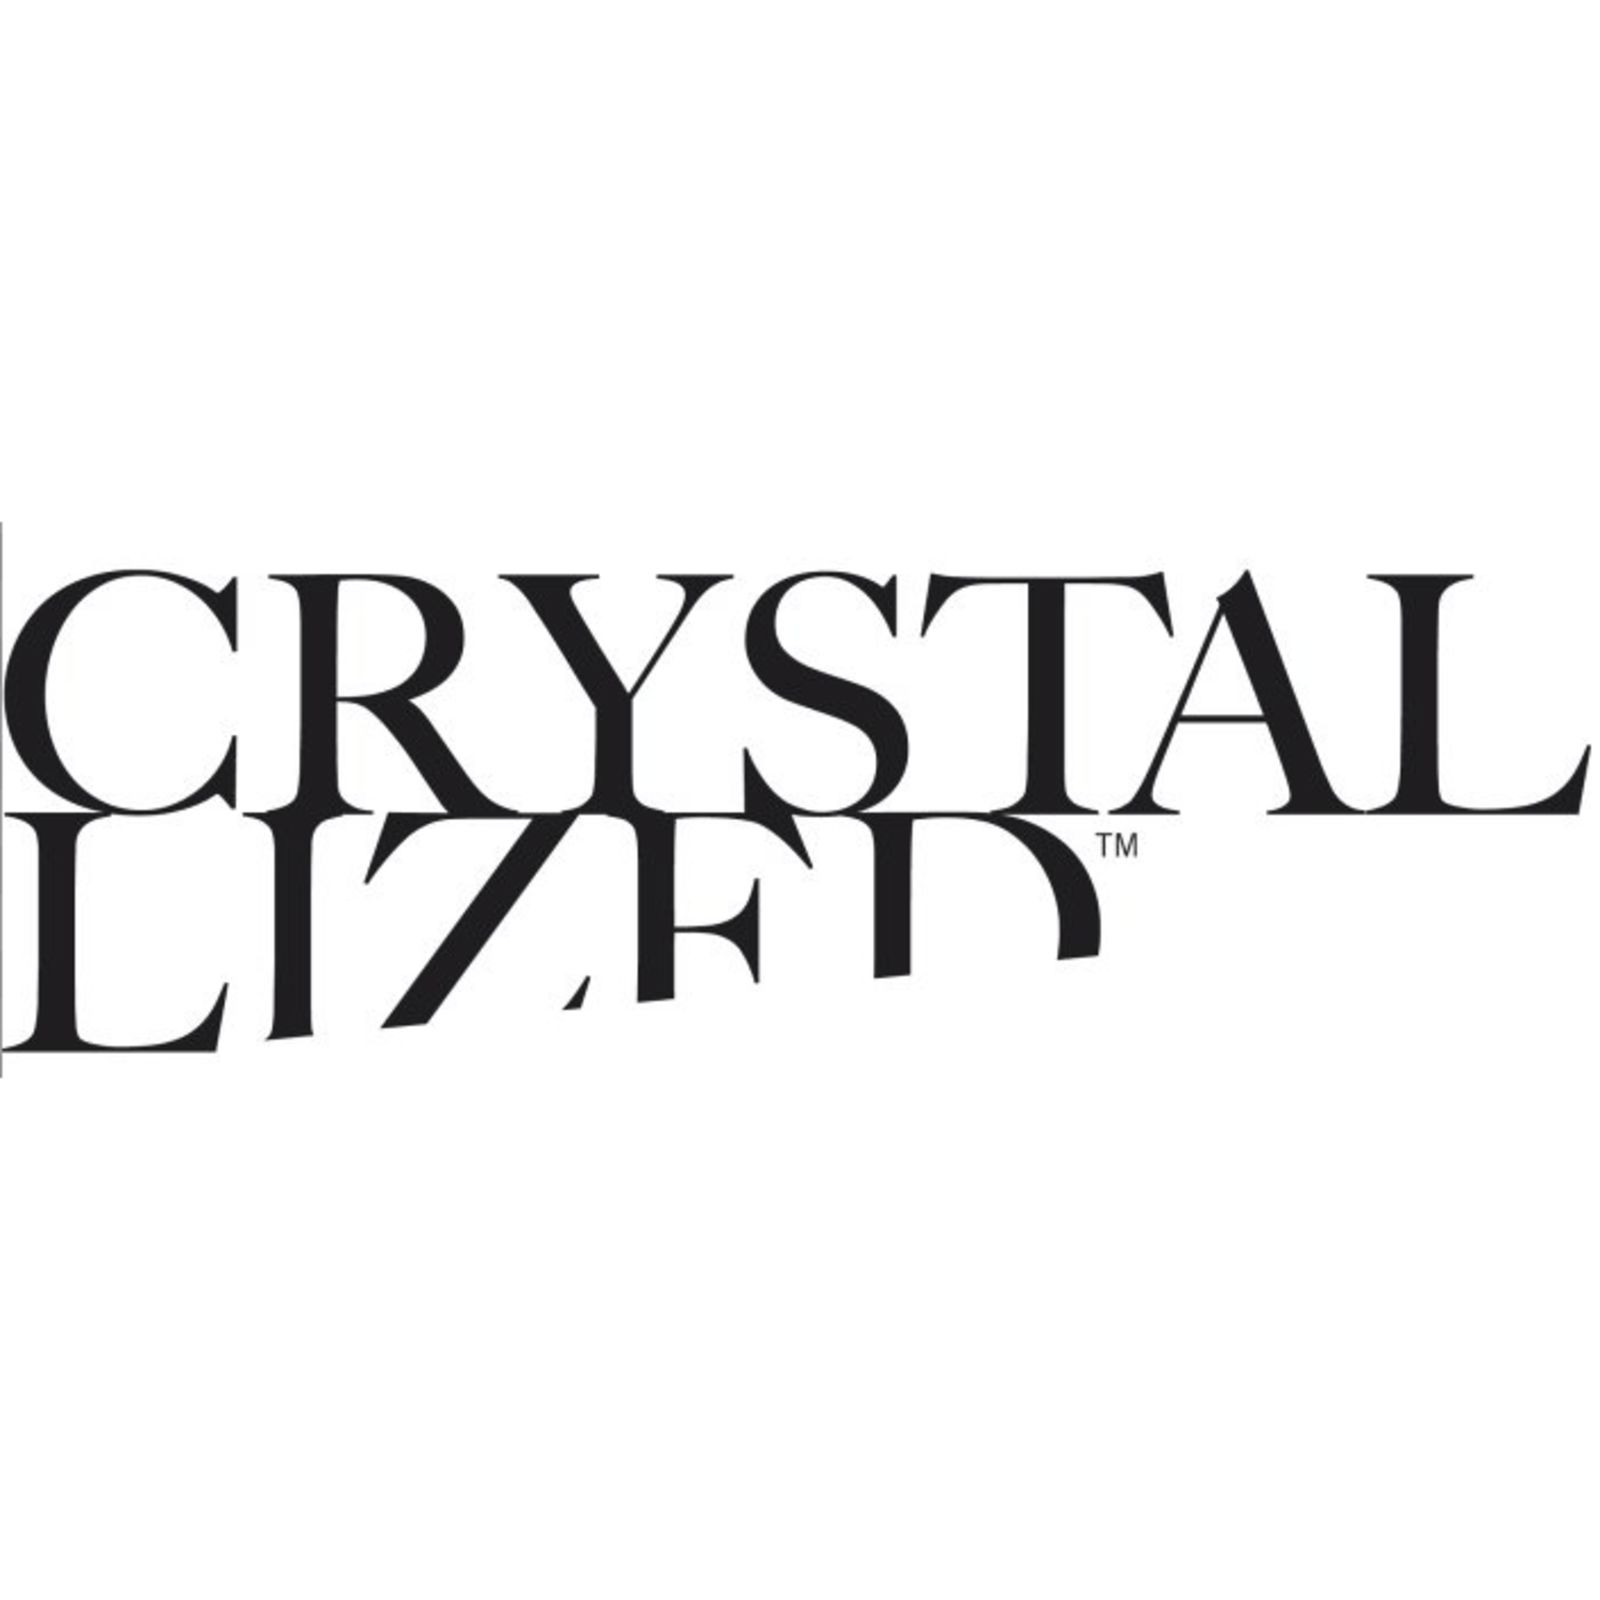 CRYSTALLIZED™